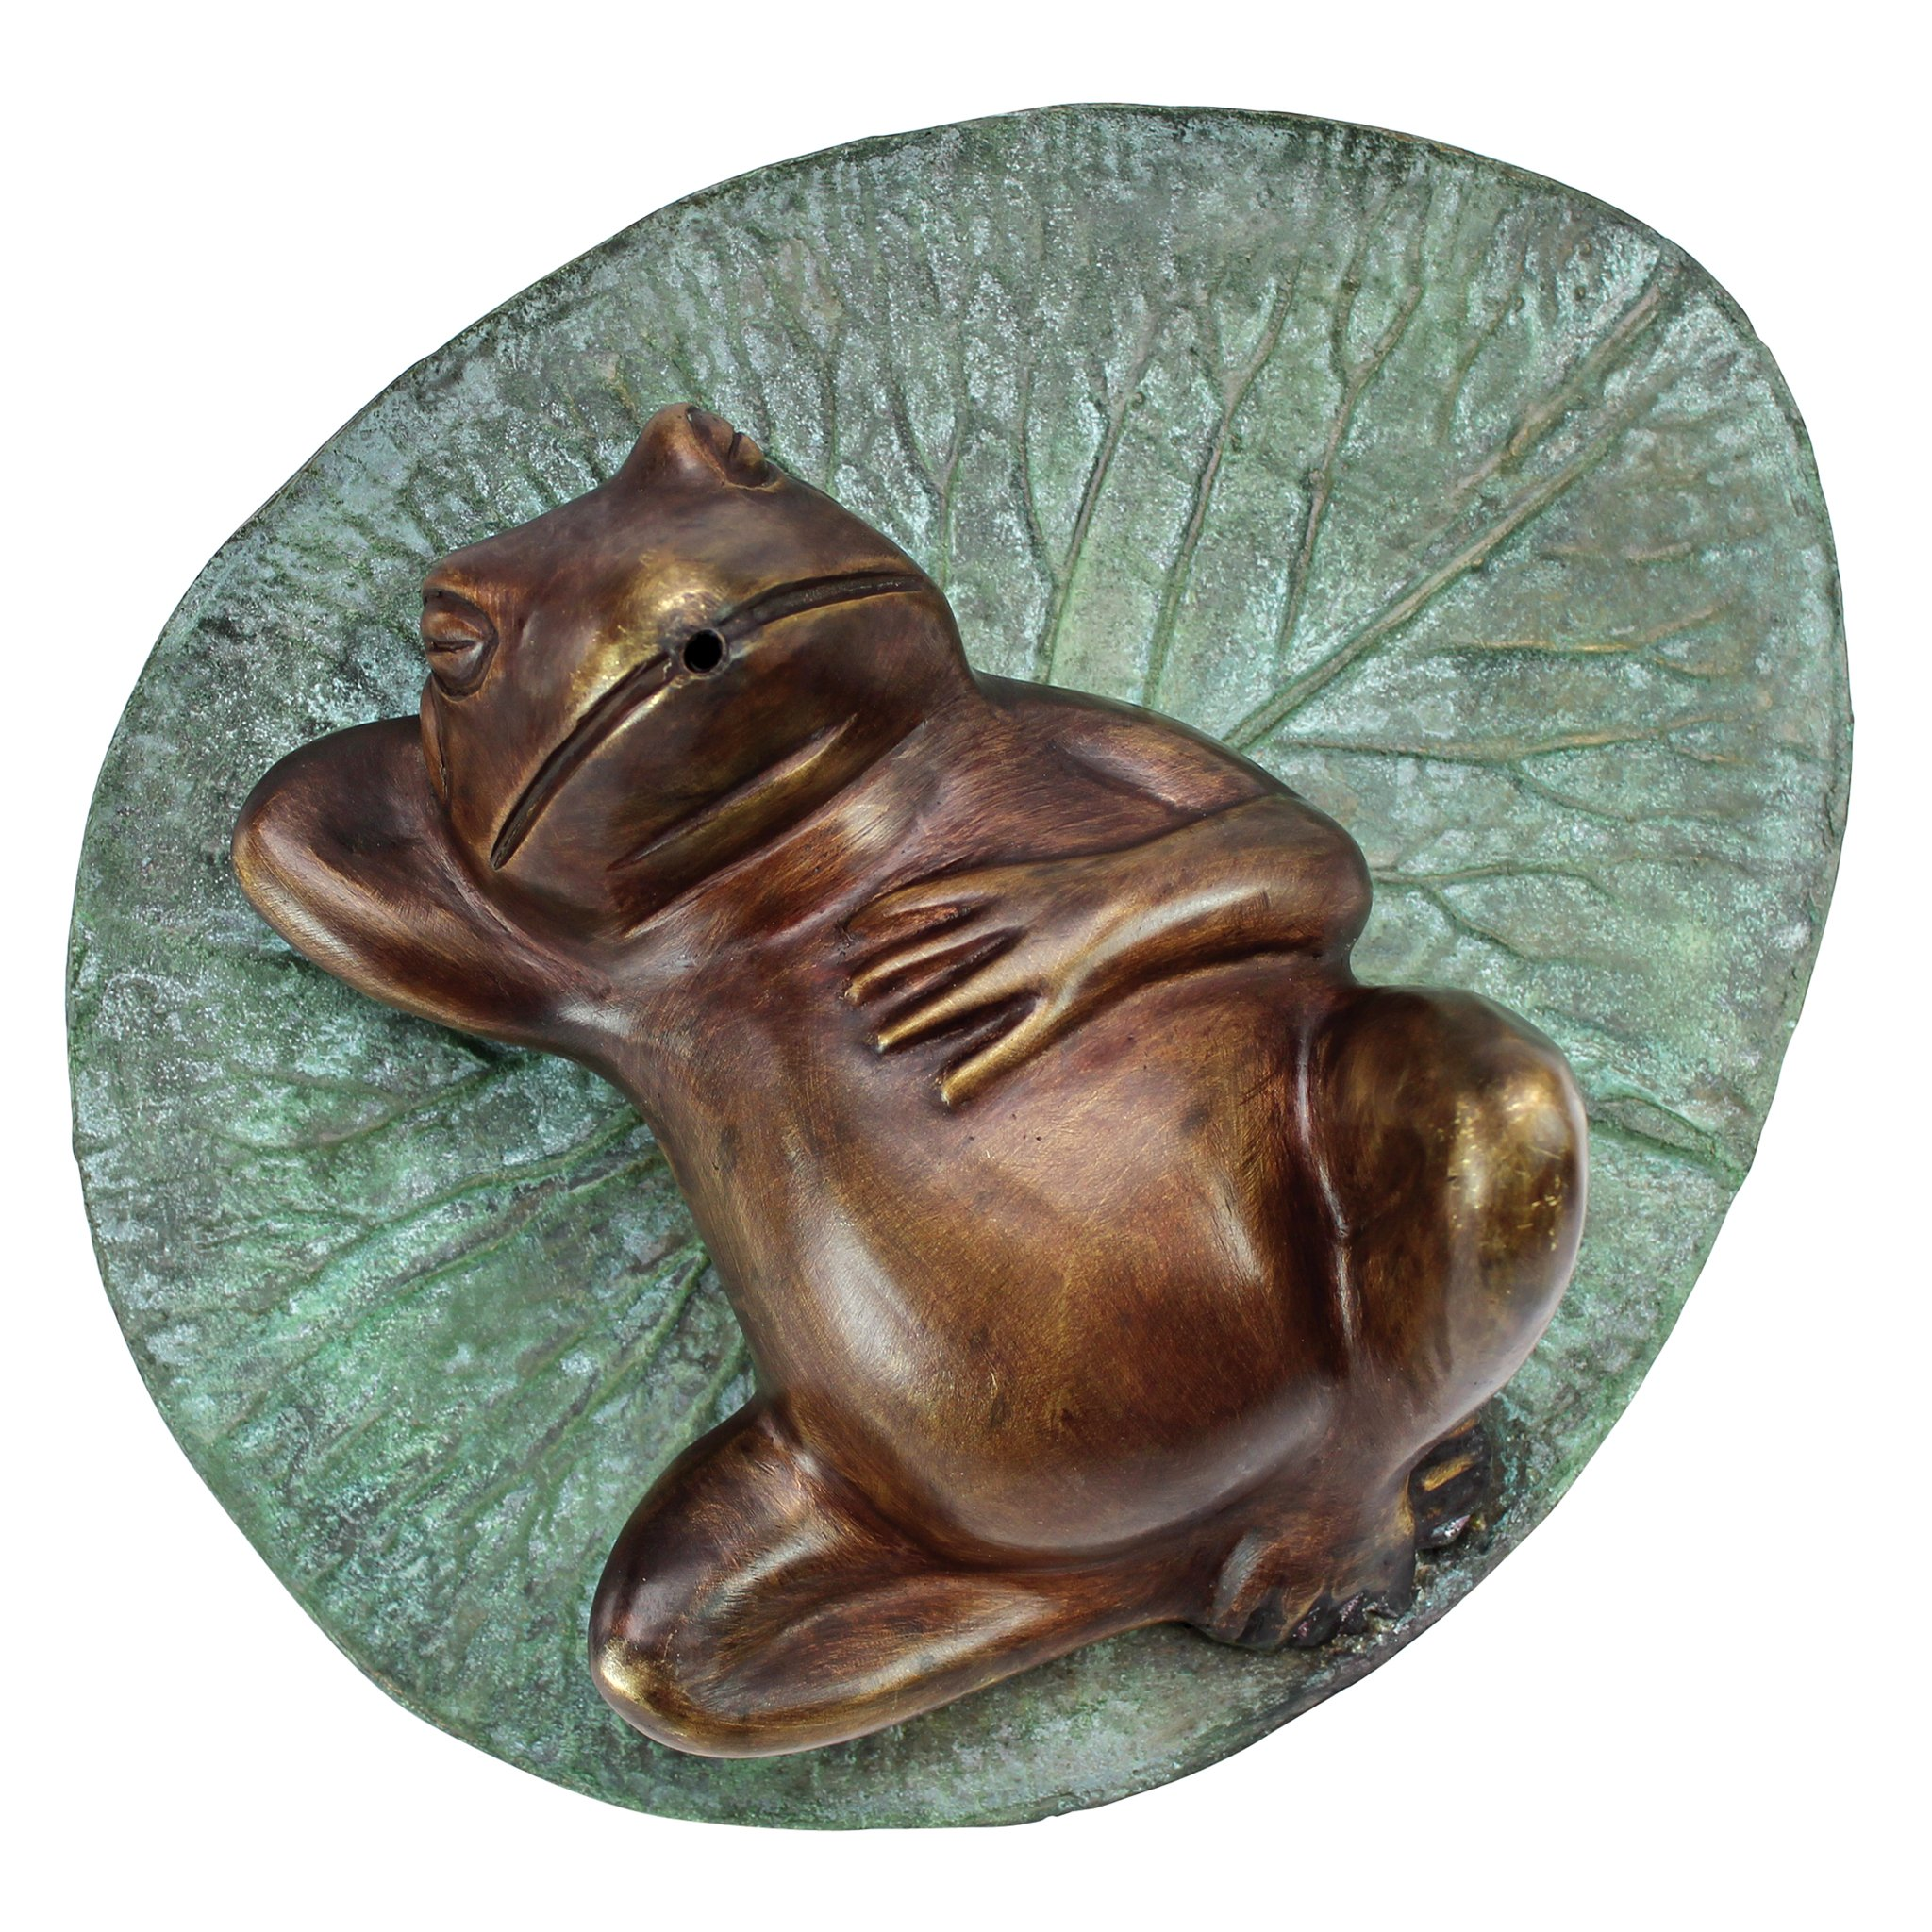 Design Toscano Spitting Frog on Lilly Pad Bronze Garden Statue